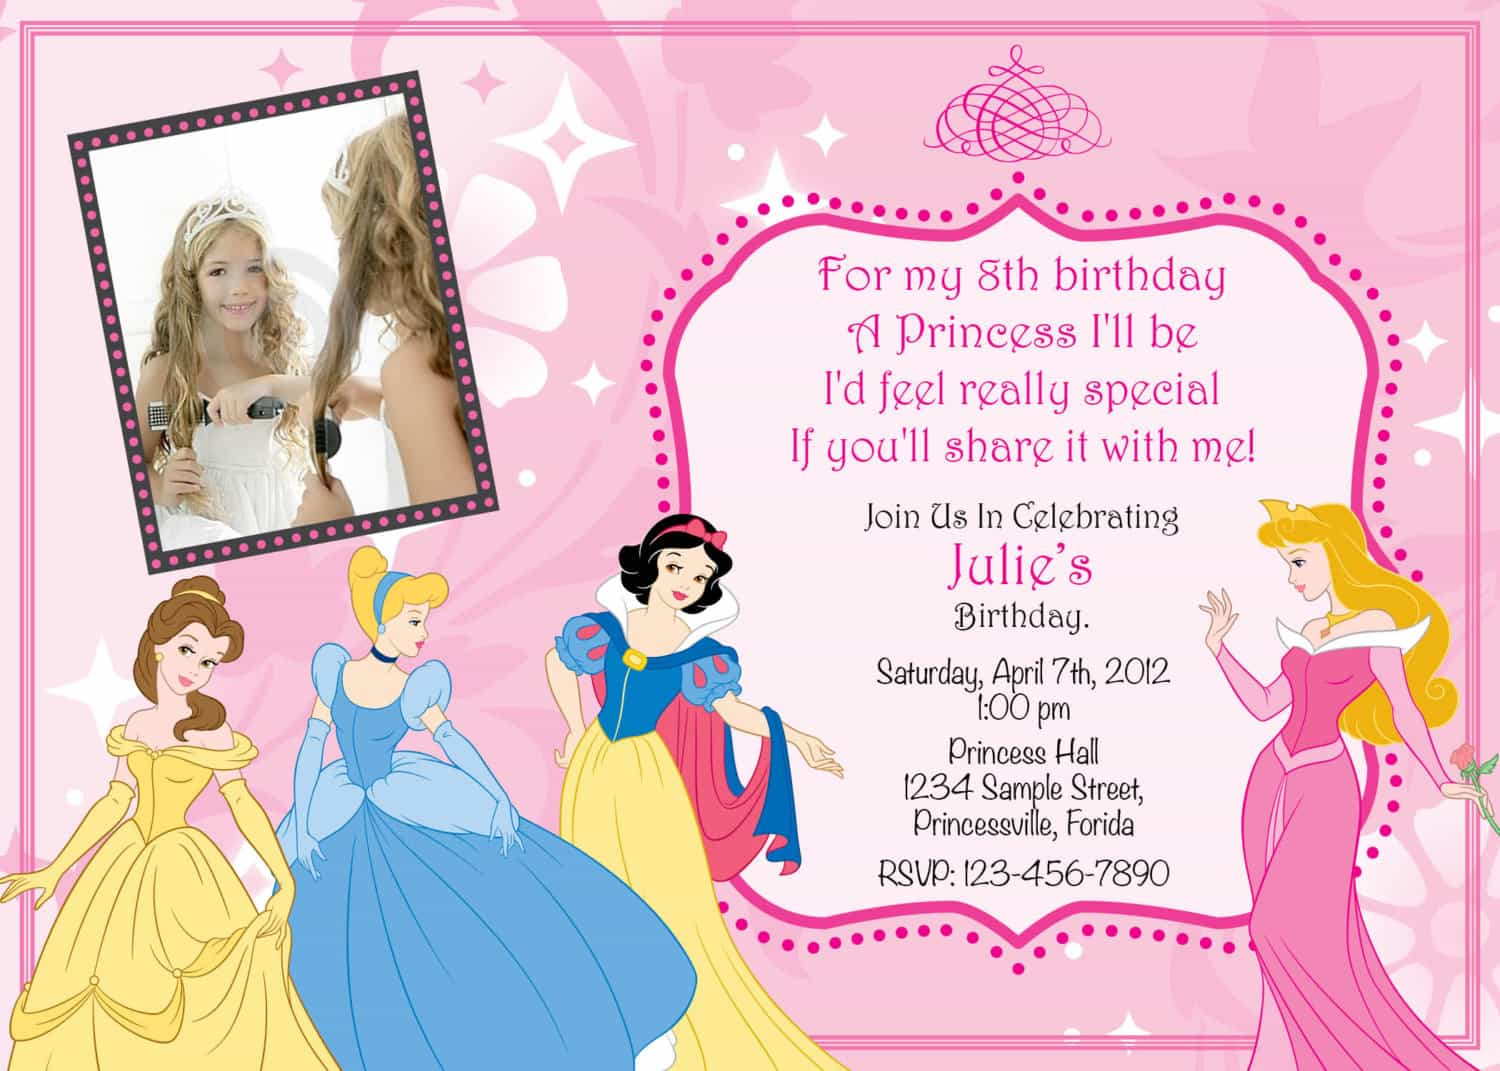 princess themed birthday invitation cards ; best-princess-birthday-invitations-free-prepossessing-layout-the-unique-ideas-for-princess-birthday-invitations-egreeting-ecards-com